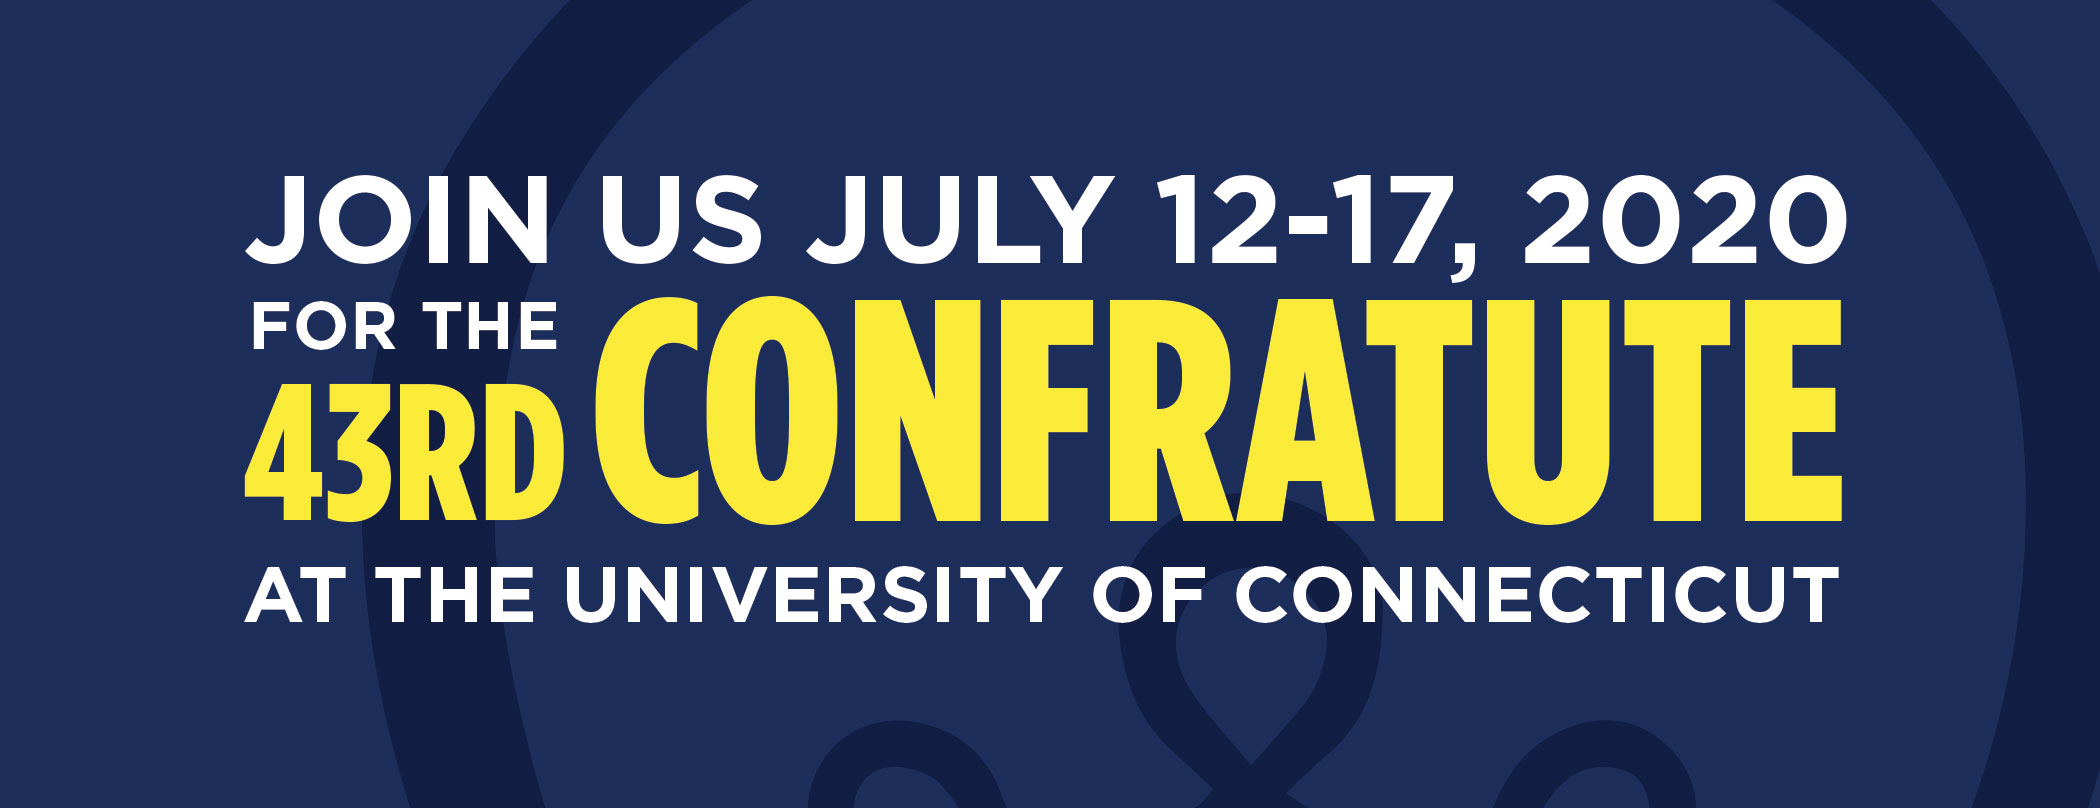 Join us July 12-17, 2020 for the 43rd Confratute at UConn